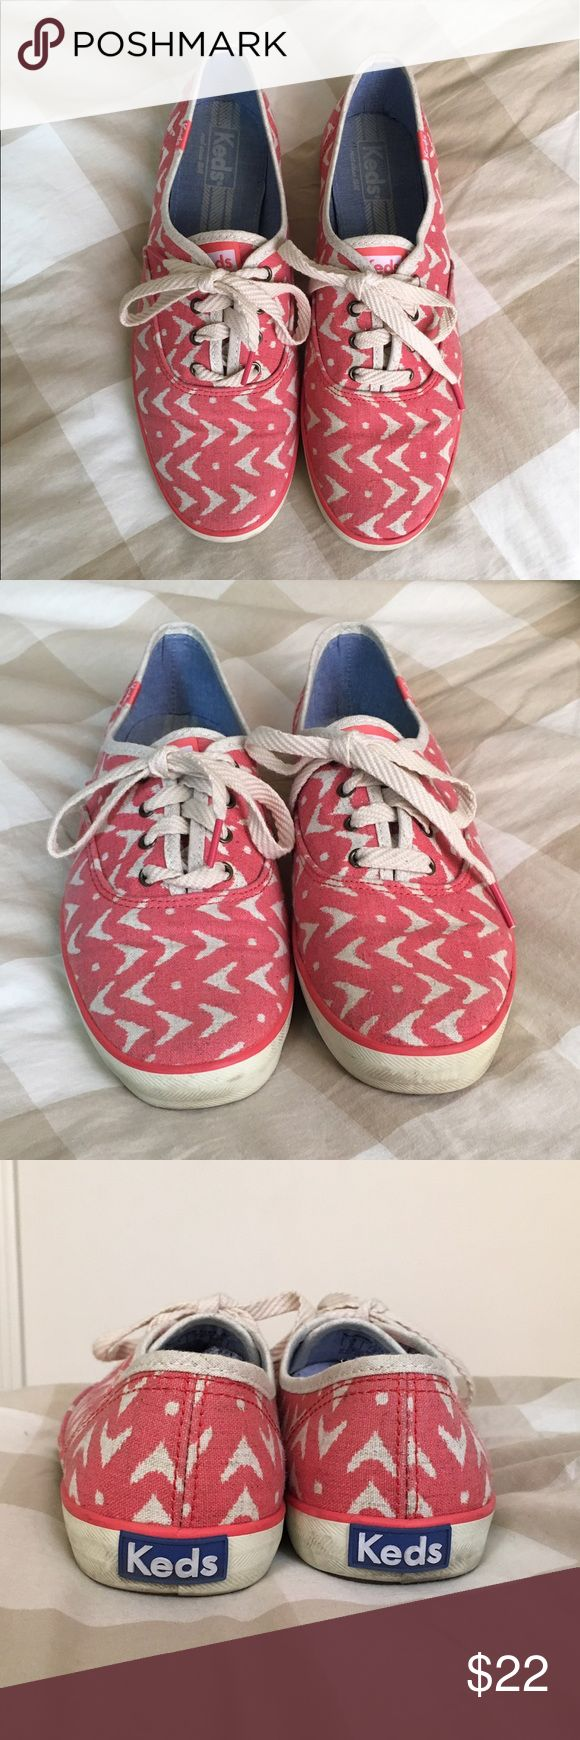 Keds Champion iKat Sneaker Super cute Keds Champion iKat shoes that are perfect for spring and summer! Fun print and really comfortable. Only worn maybe 5-6 times and in great condition. Size 9.5. Color: Coral/Pink Keds Shoes Sneakers